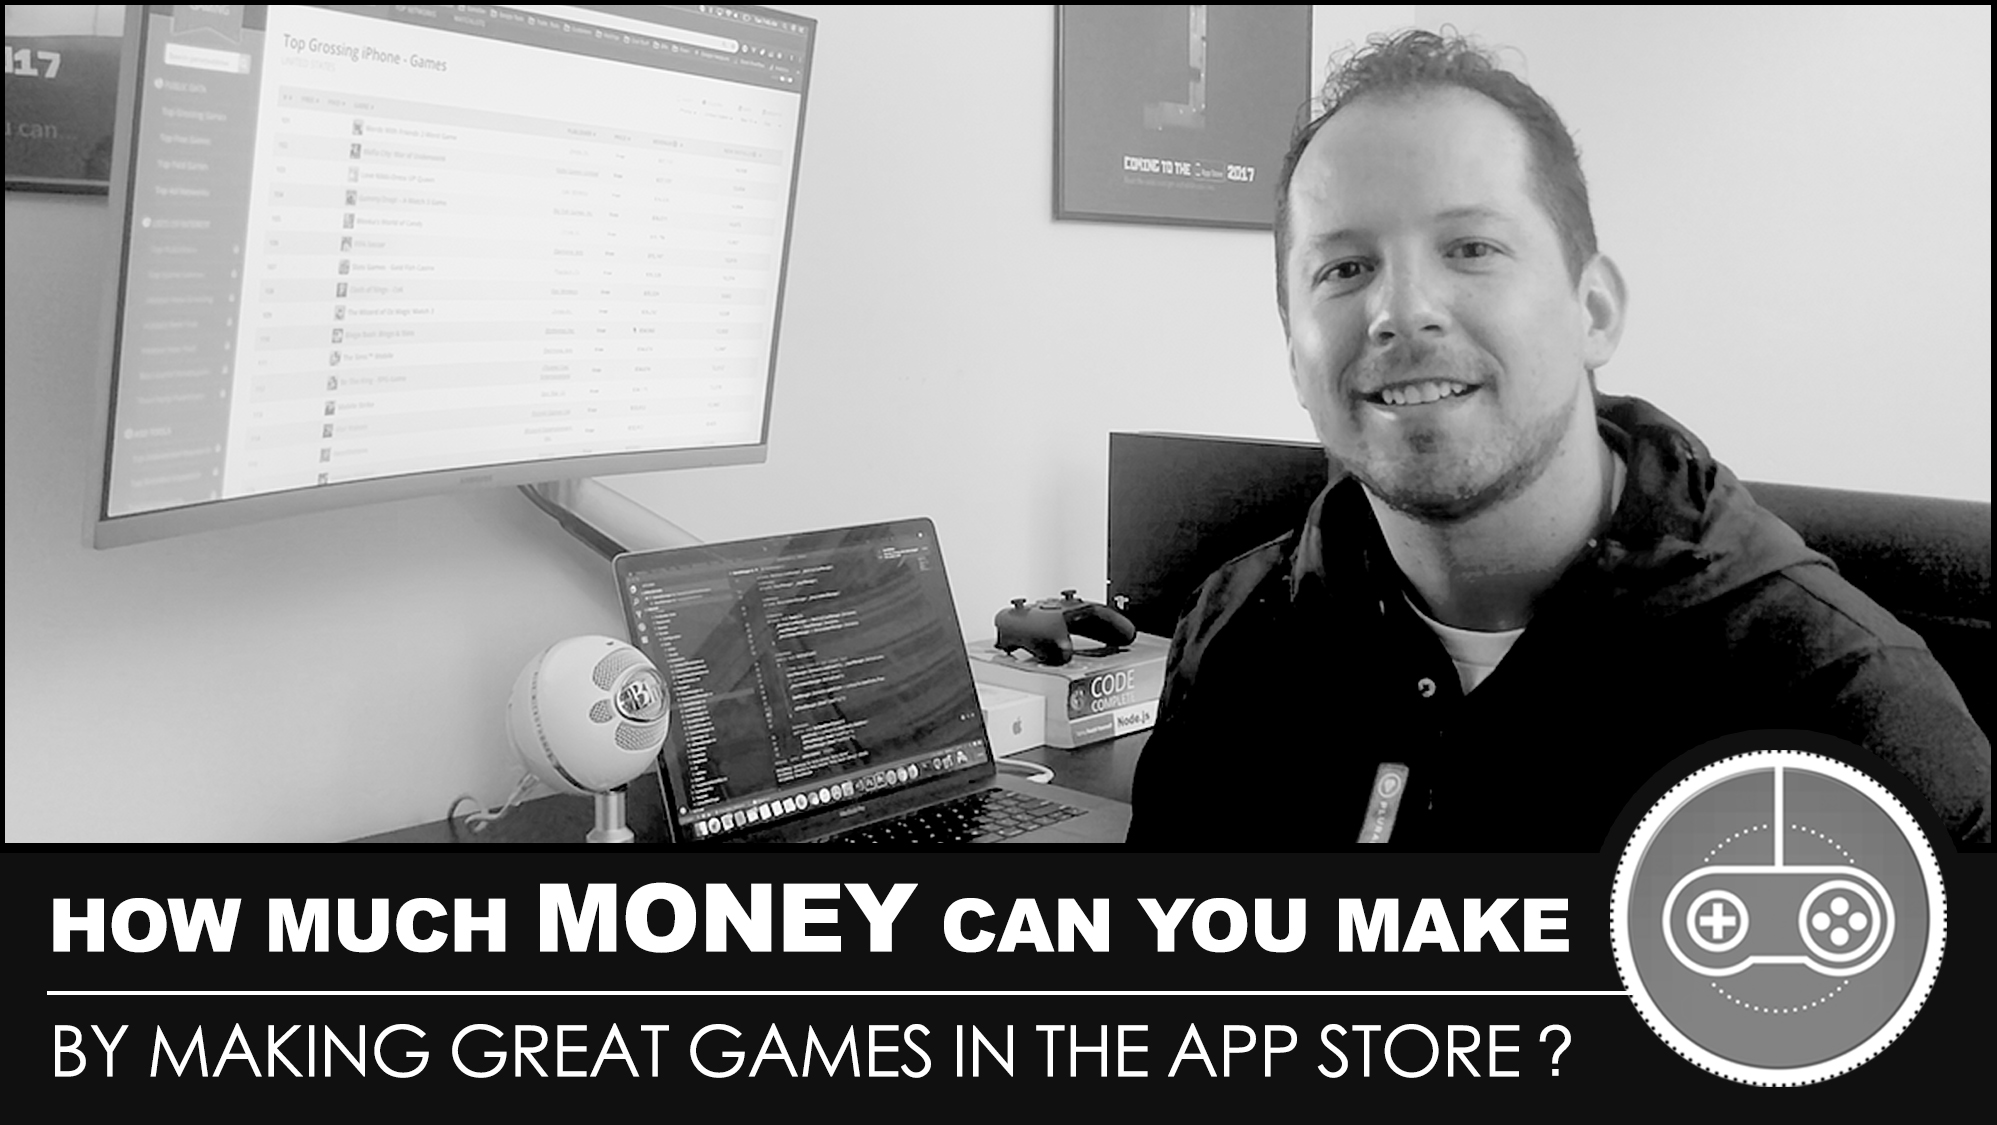 How much money can you make by making great games in the App Store?